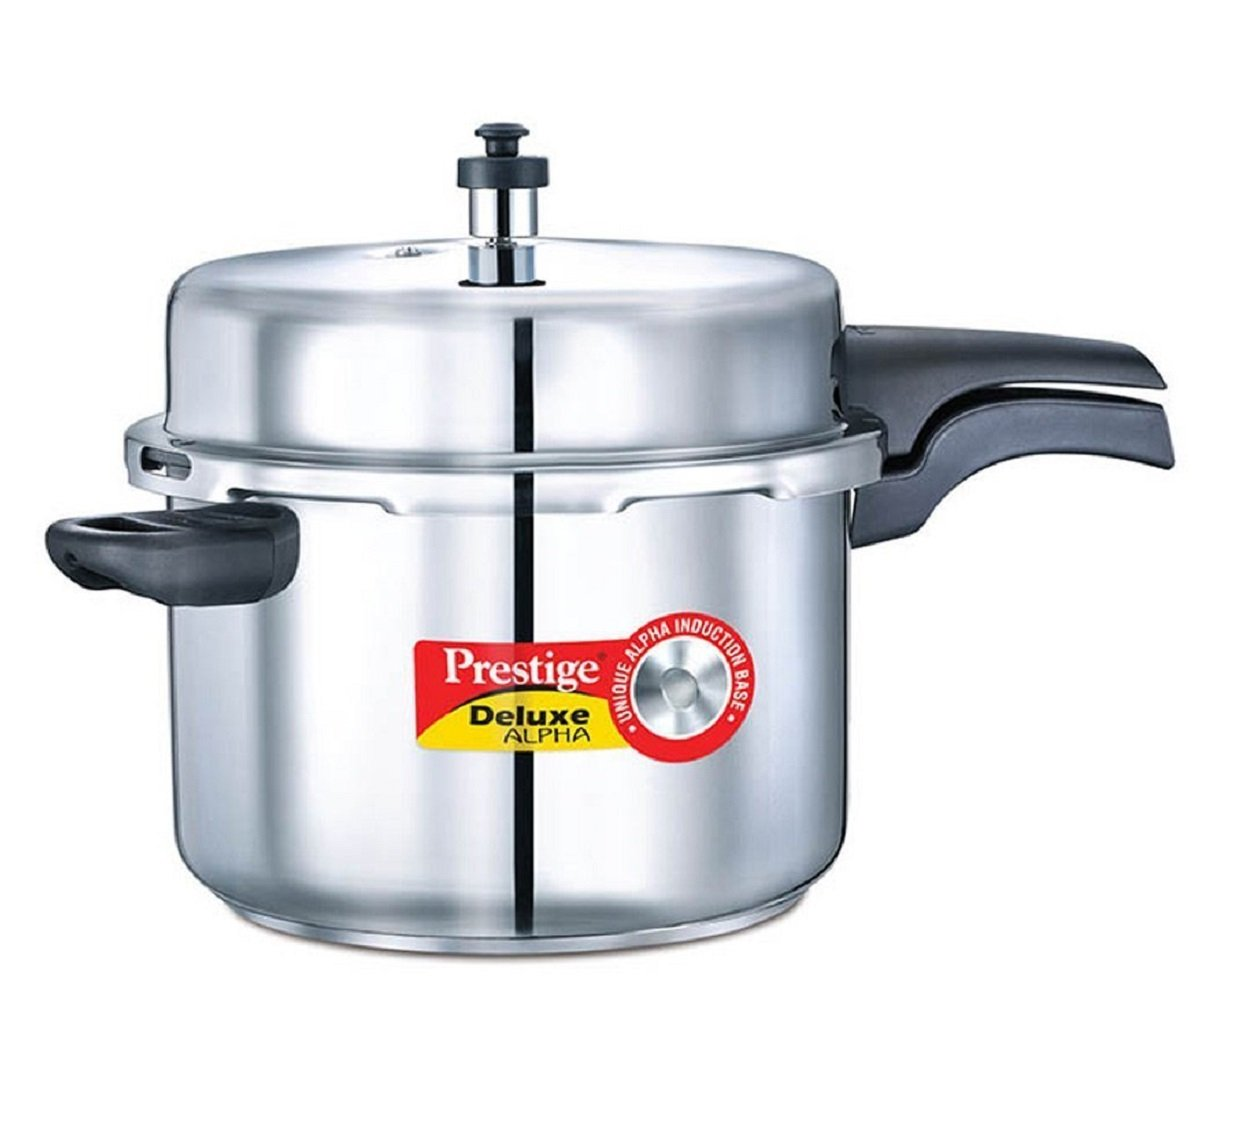 Prestige 8-Liter Deluxe Alpha Induction Base Stainless Steel Pressure Cooker, Small, Silver